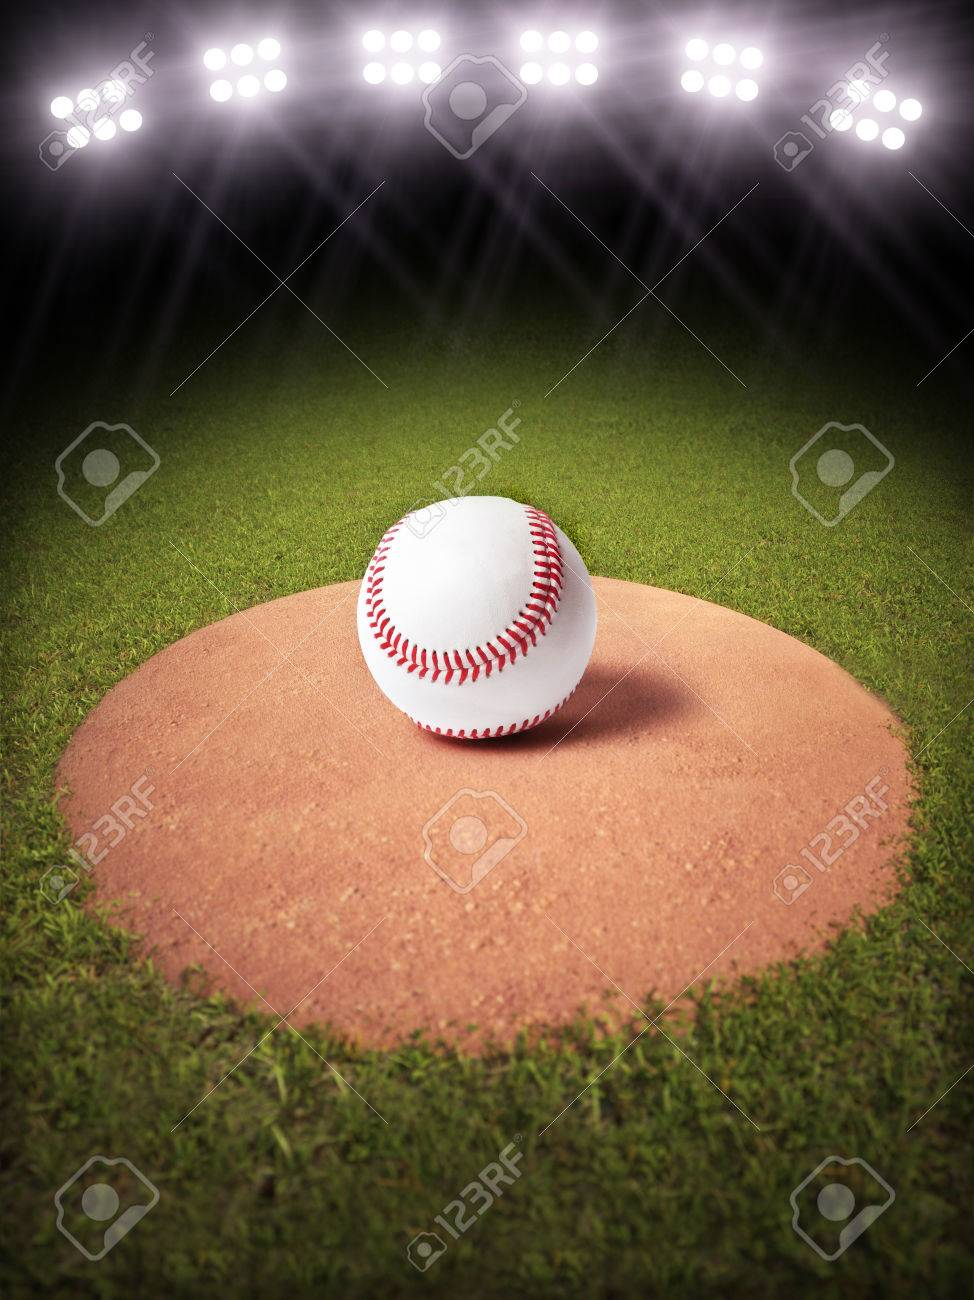 3d Rendering Of A Baseball On Pitchers Mound Lighted Field Room For Text